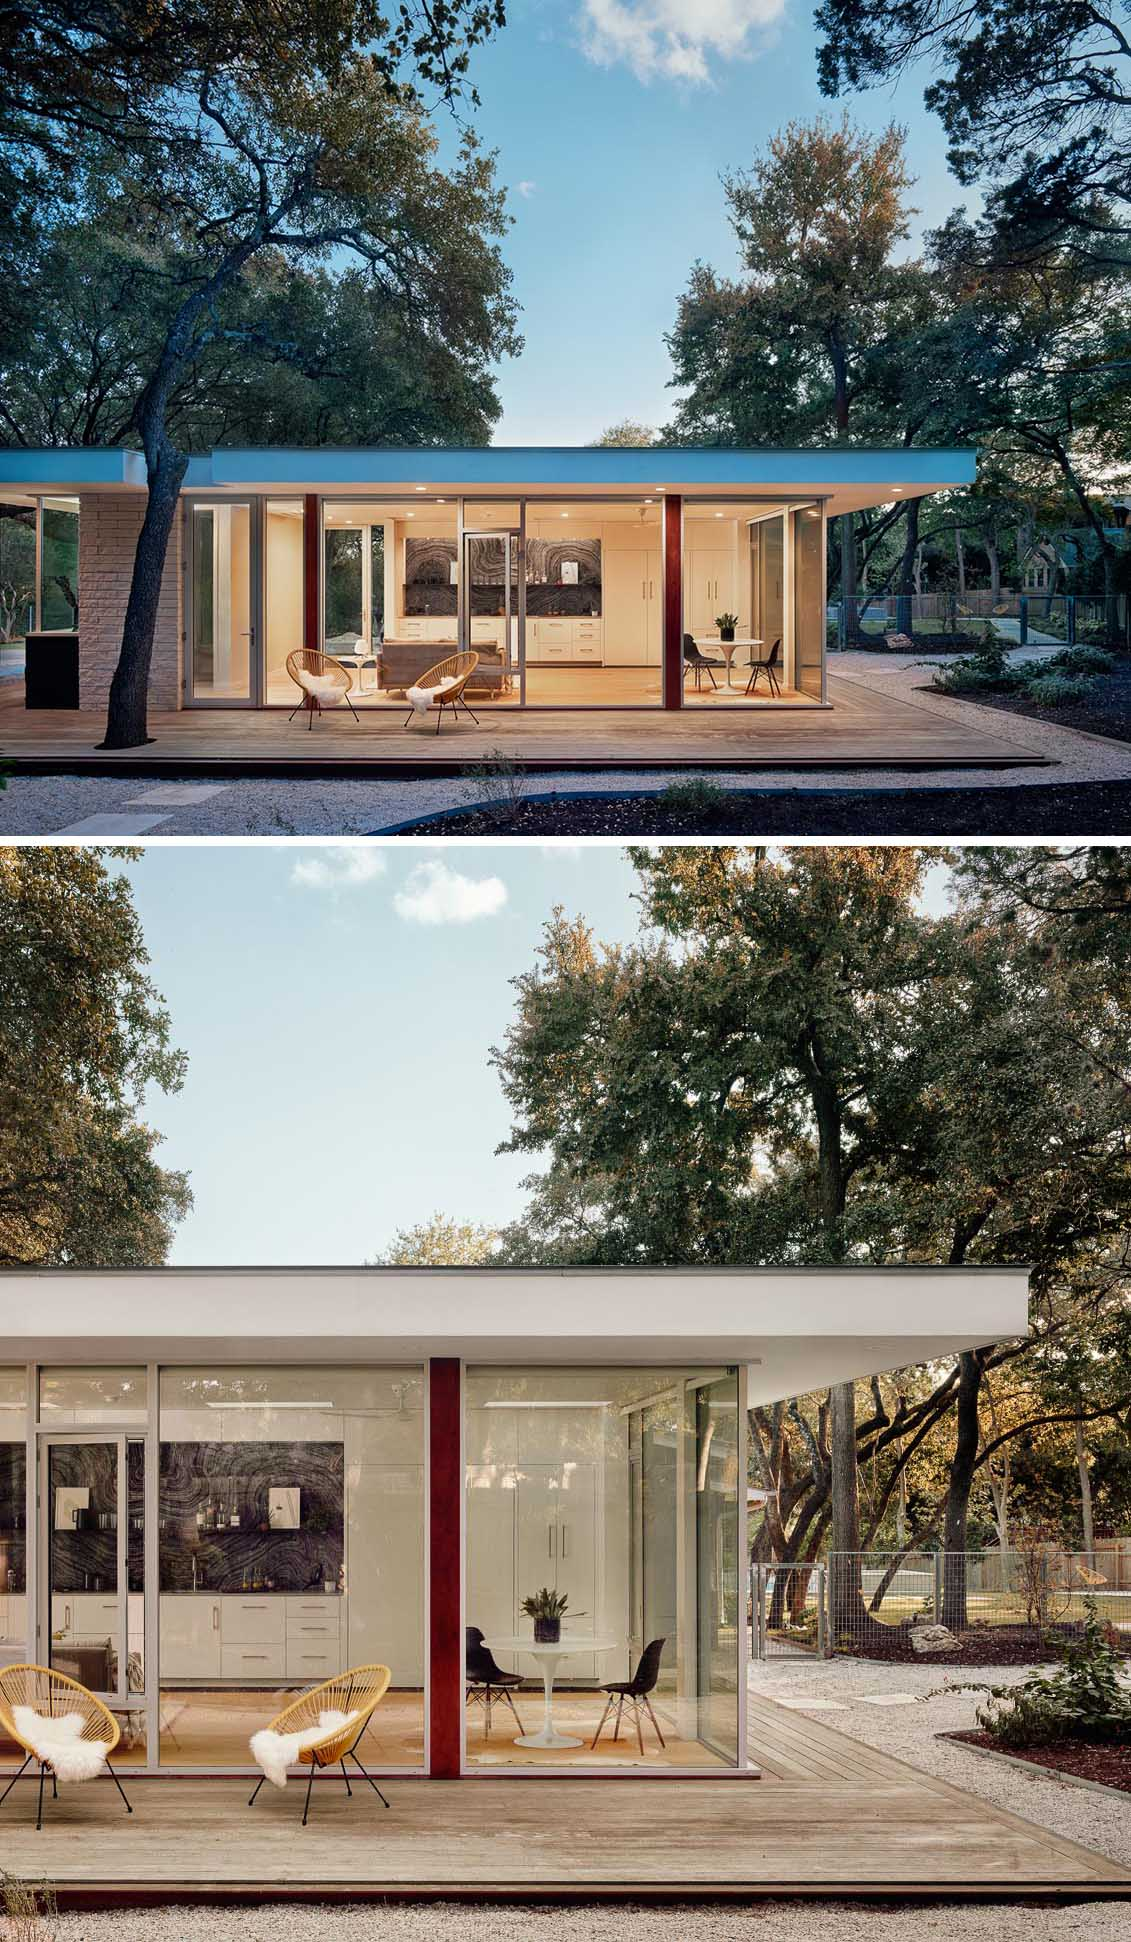 A modern ADU (accessory dwelling unit) or guest house, has walls of glass and measures in at 540 square feet (50sqm).